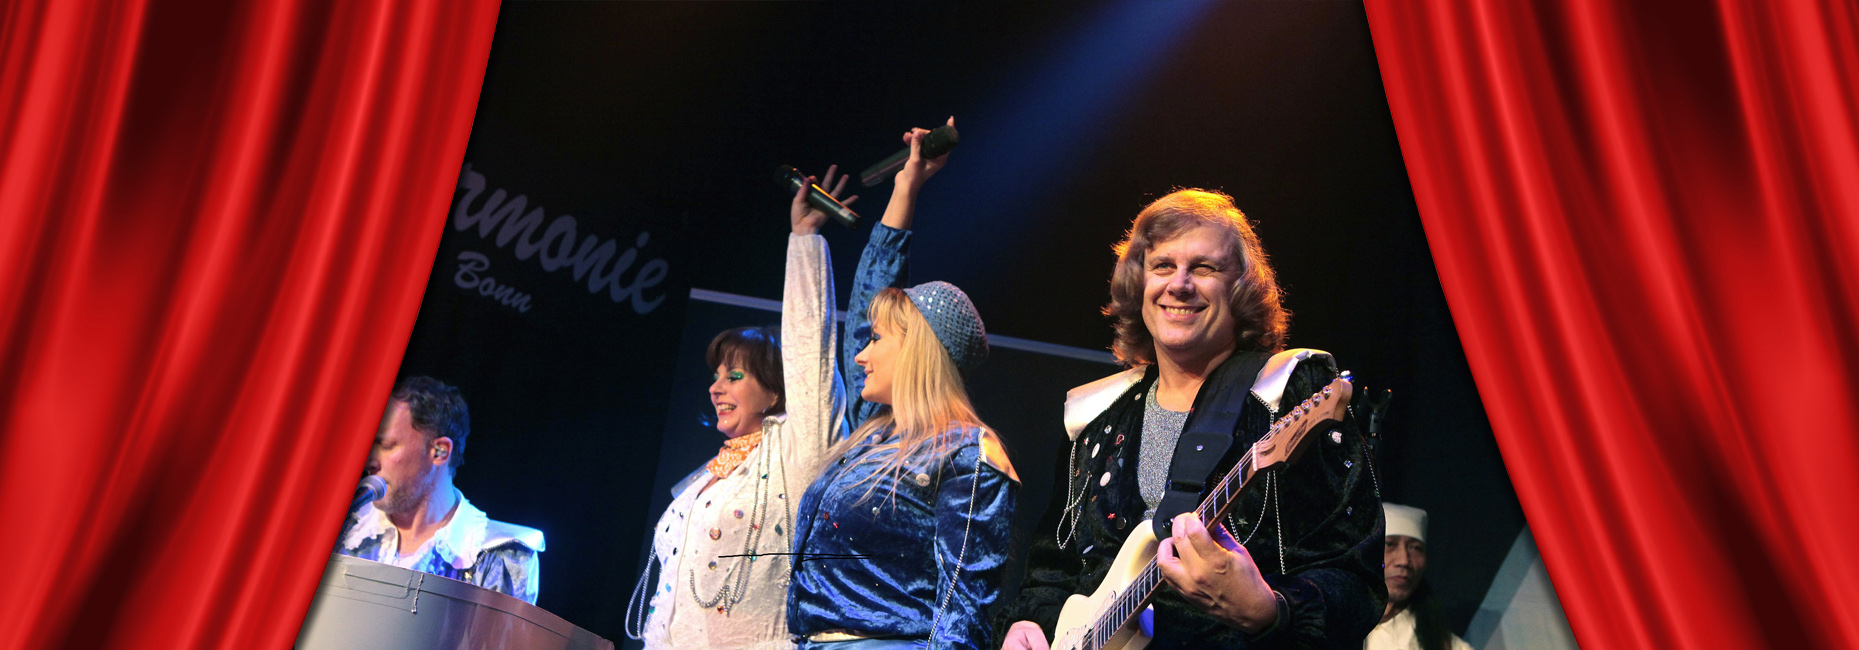 28. November | 19:30 Uhr: Waterloo - The ABBA Show